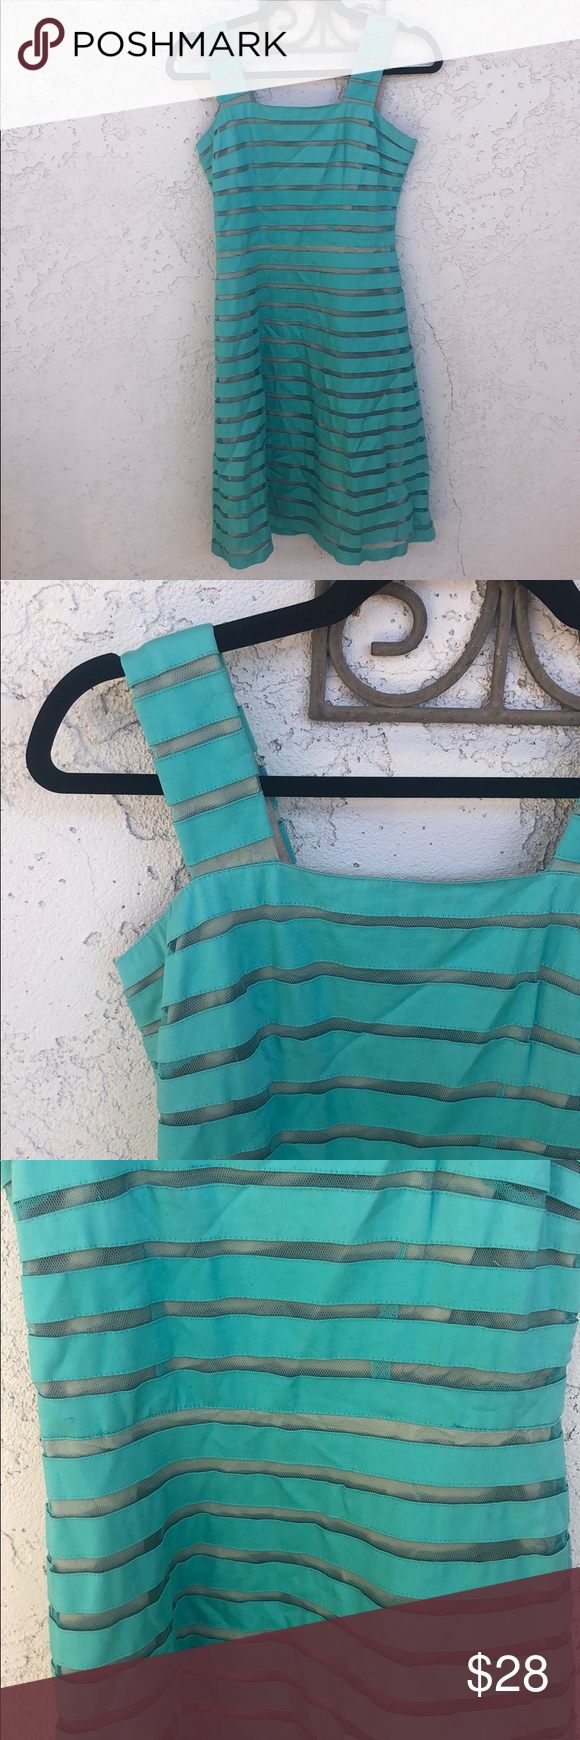 Adrianna Papell Turquoise Mesh Striped Dress As seen on